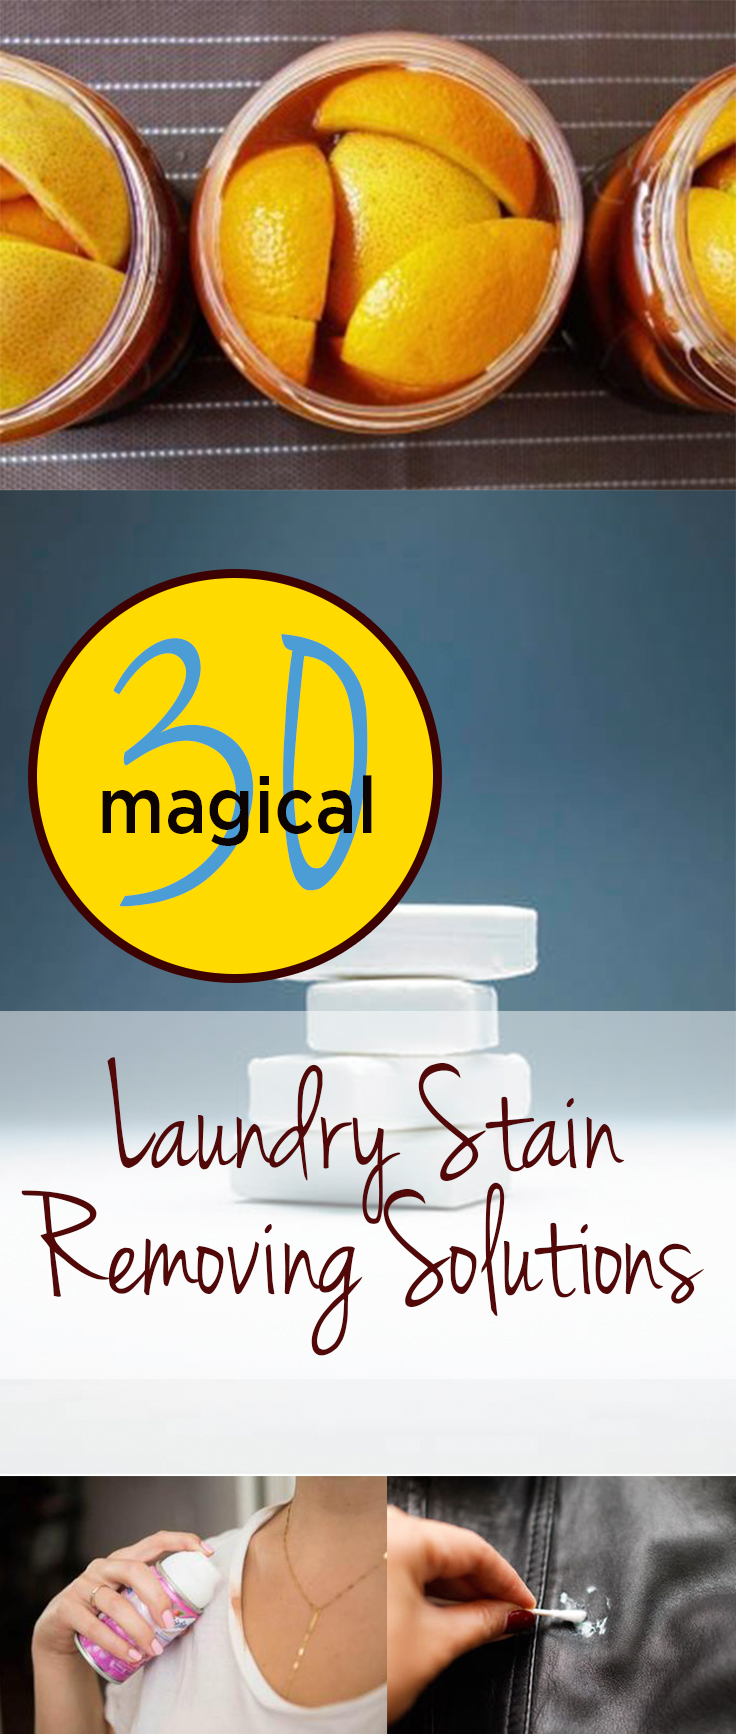 30 Magical Laundry Stain Removing Solutions